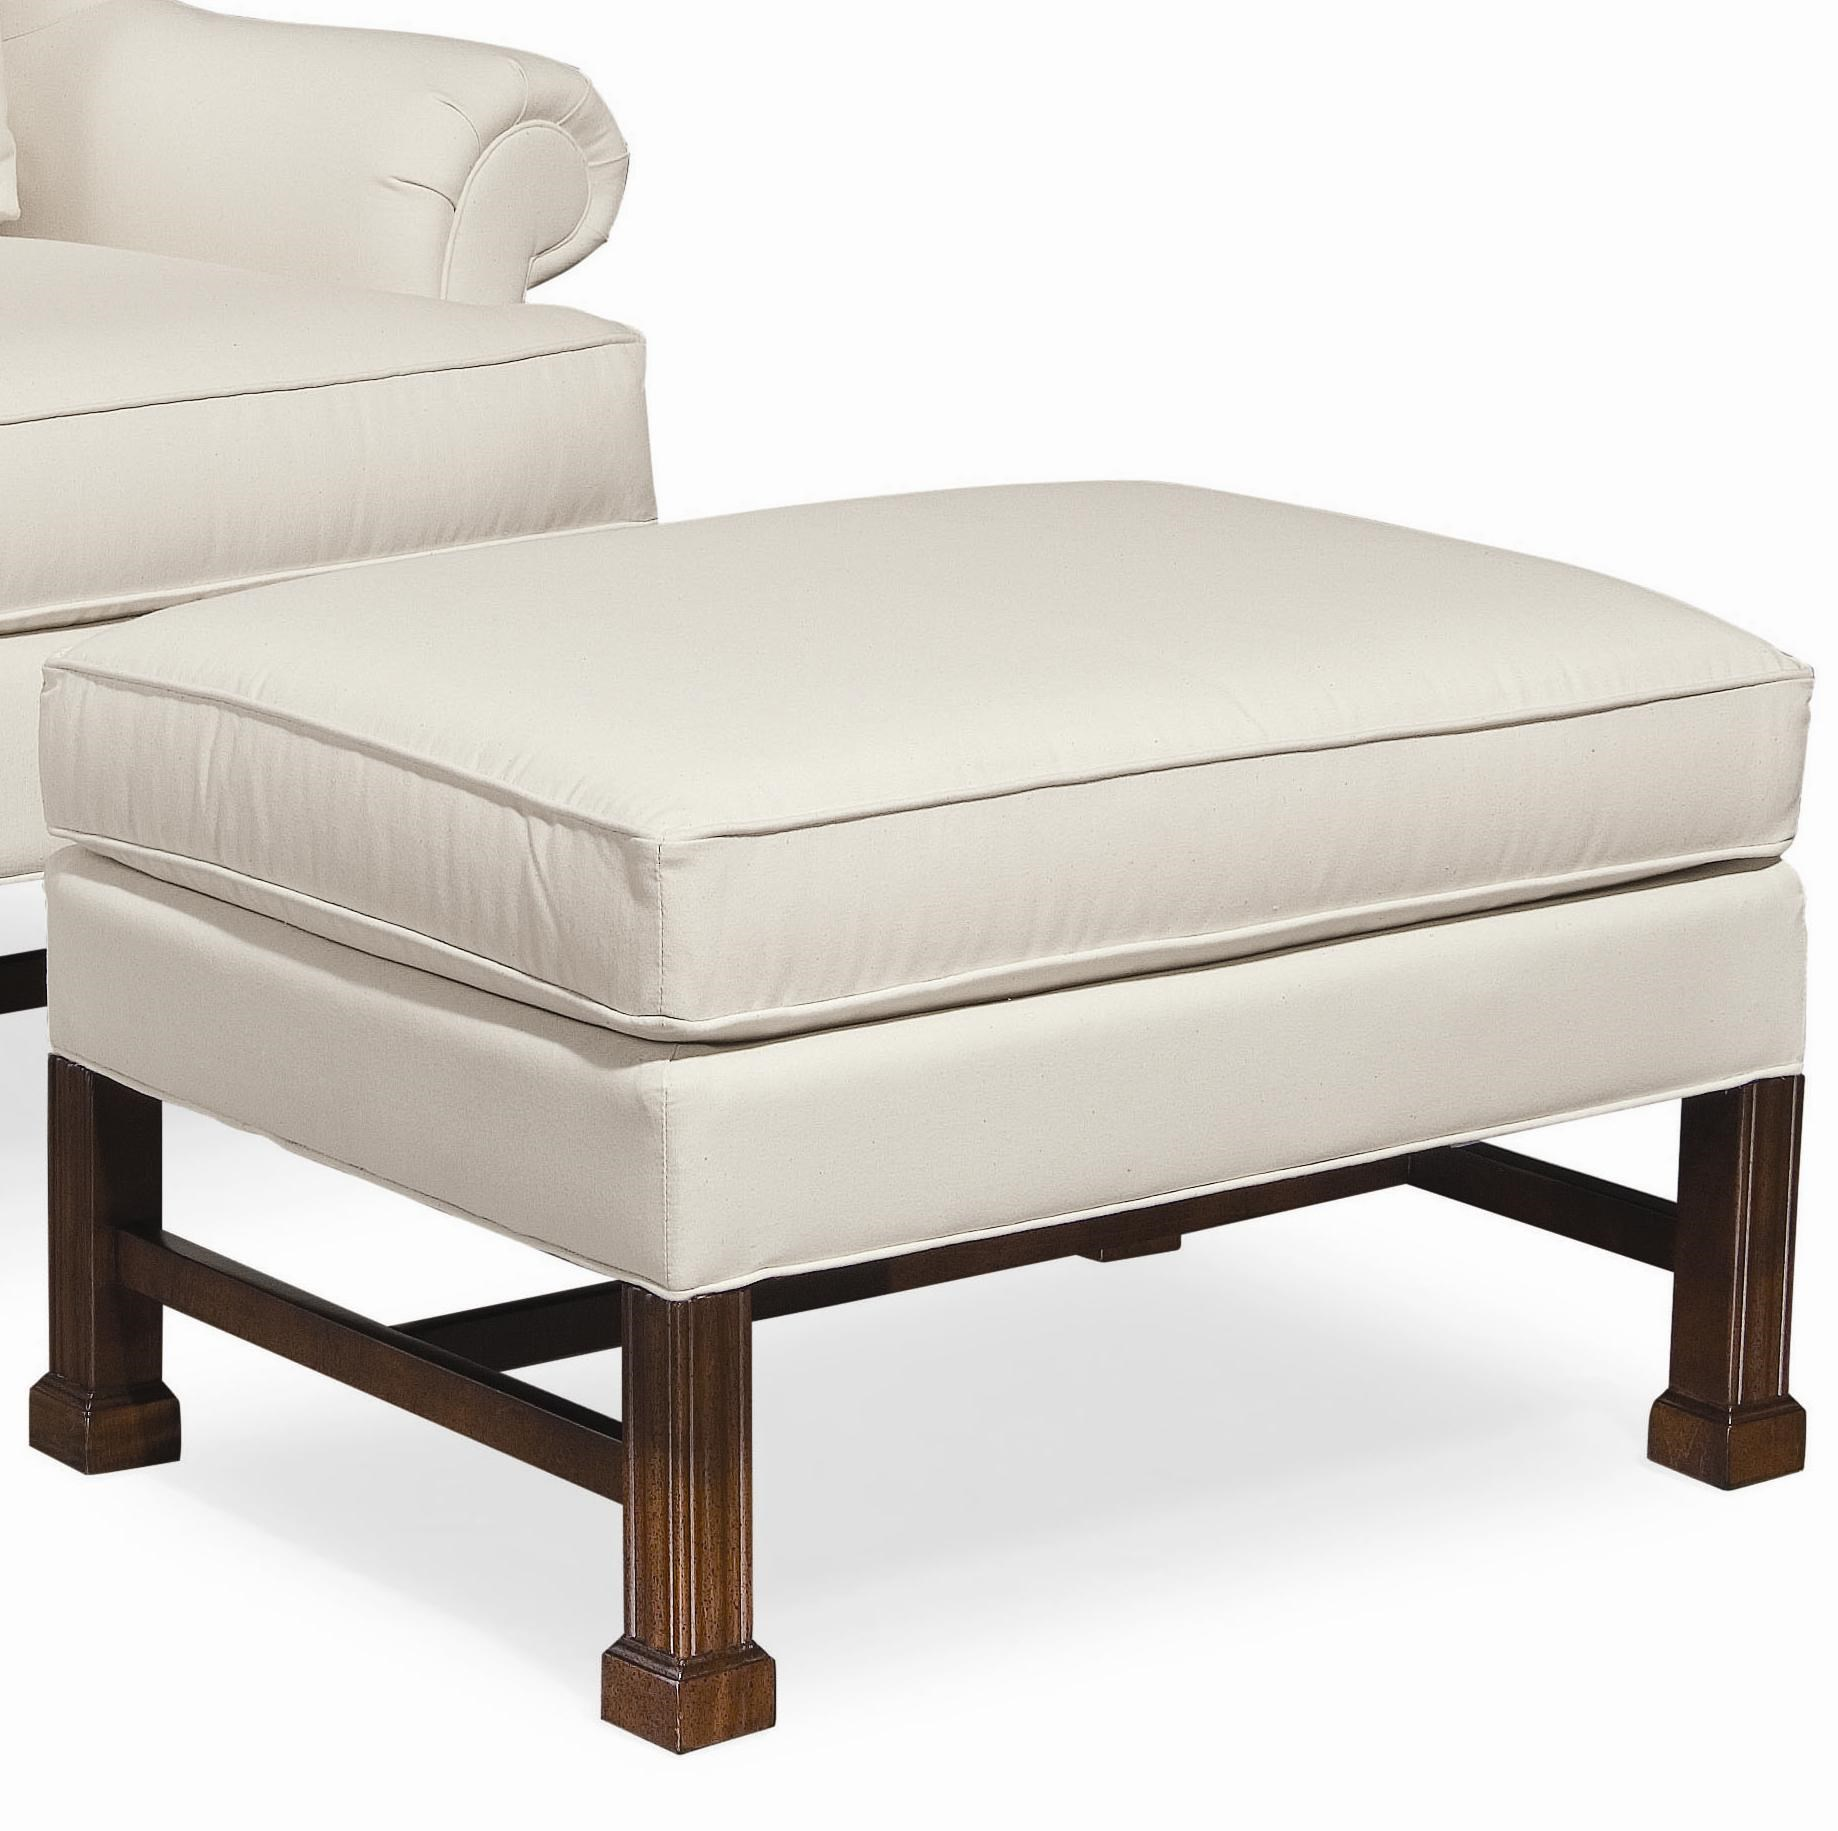 chairs and ottomans upholstered kitchen table sets with wheels thomasville jamison ottoman